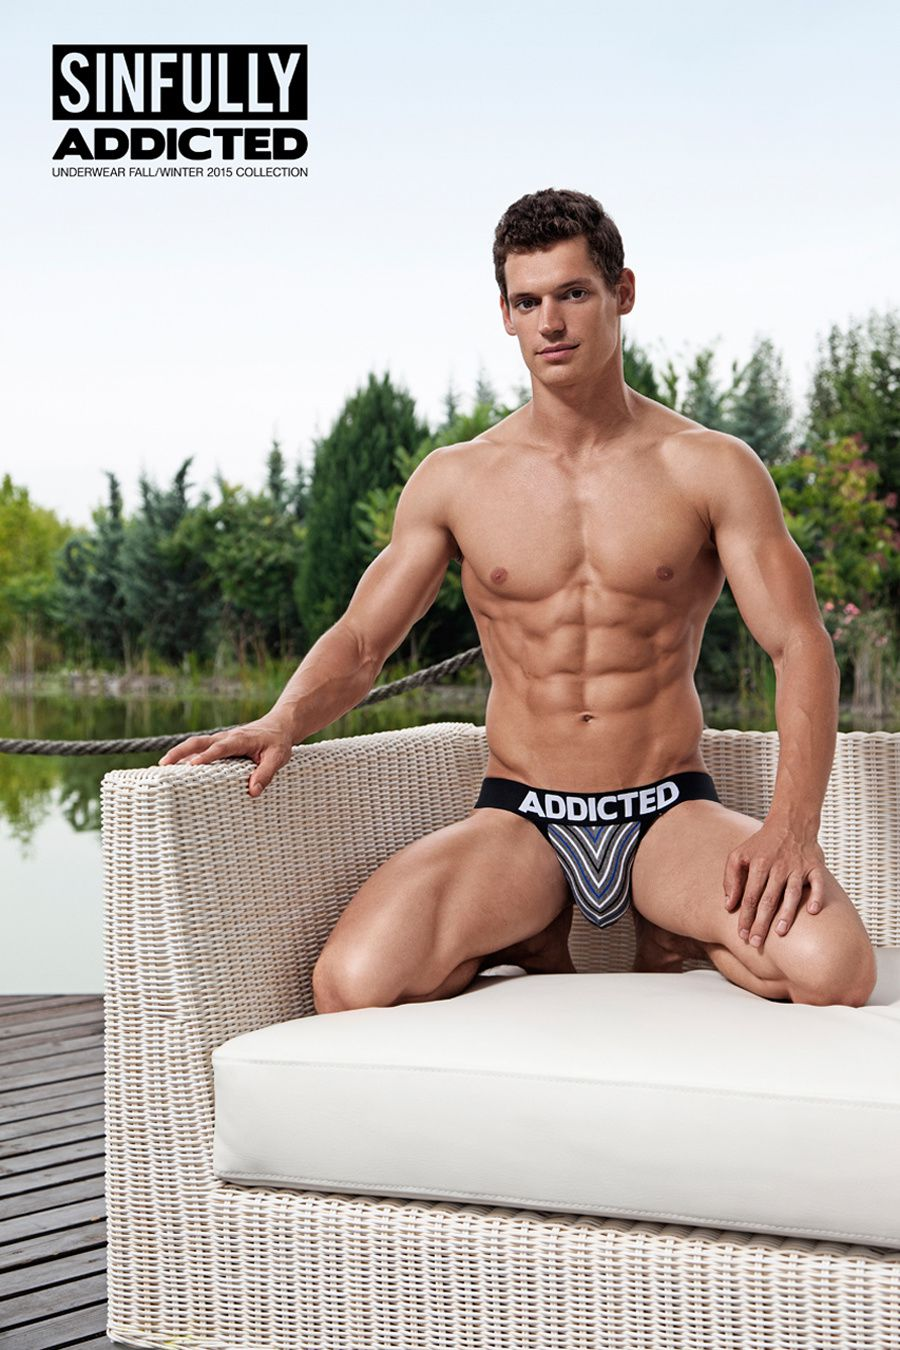 Addicted Underwear : Sinfully Addicted